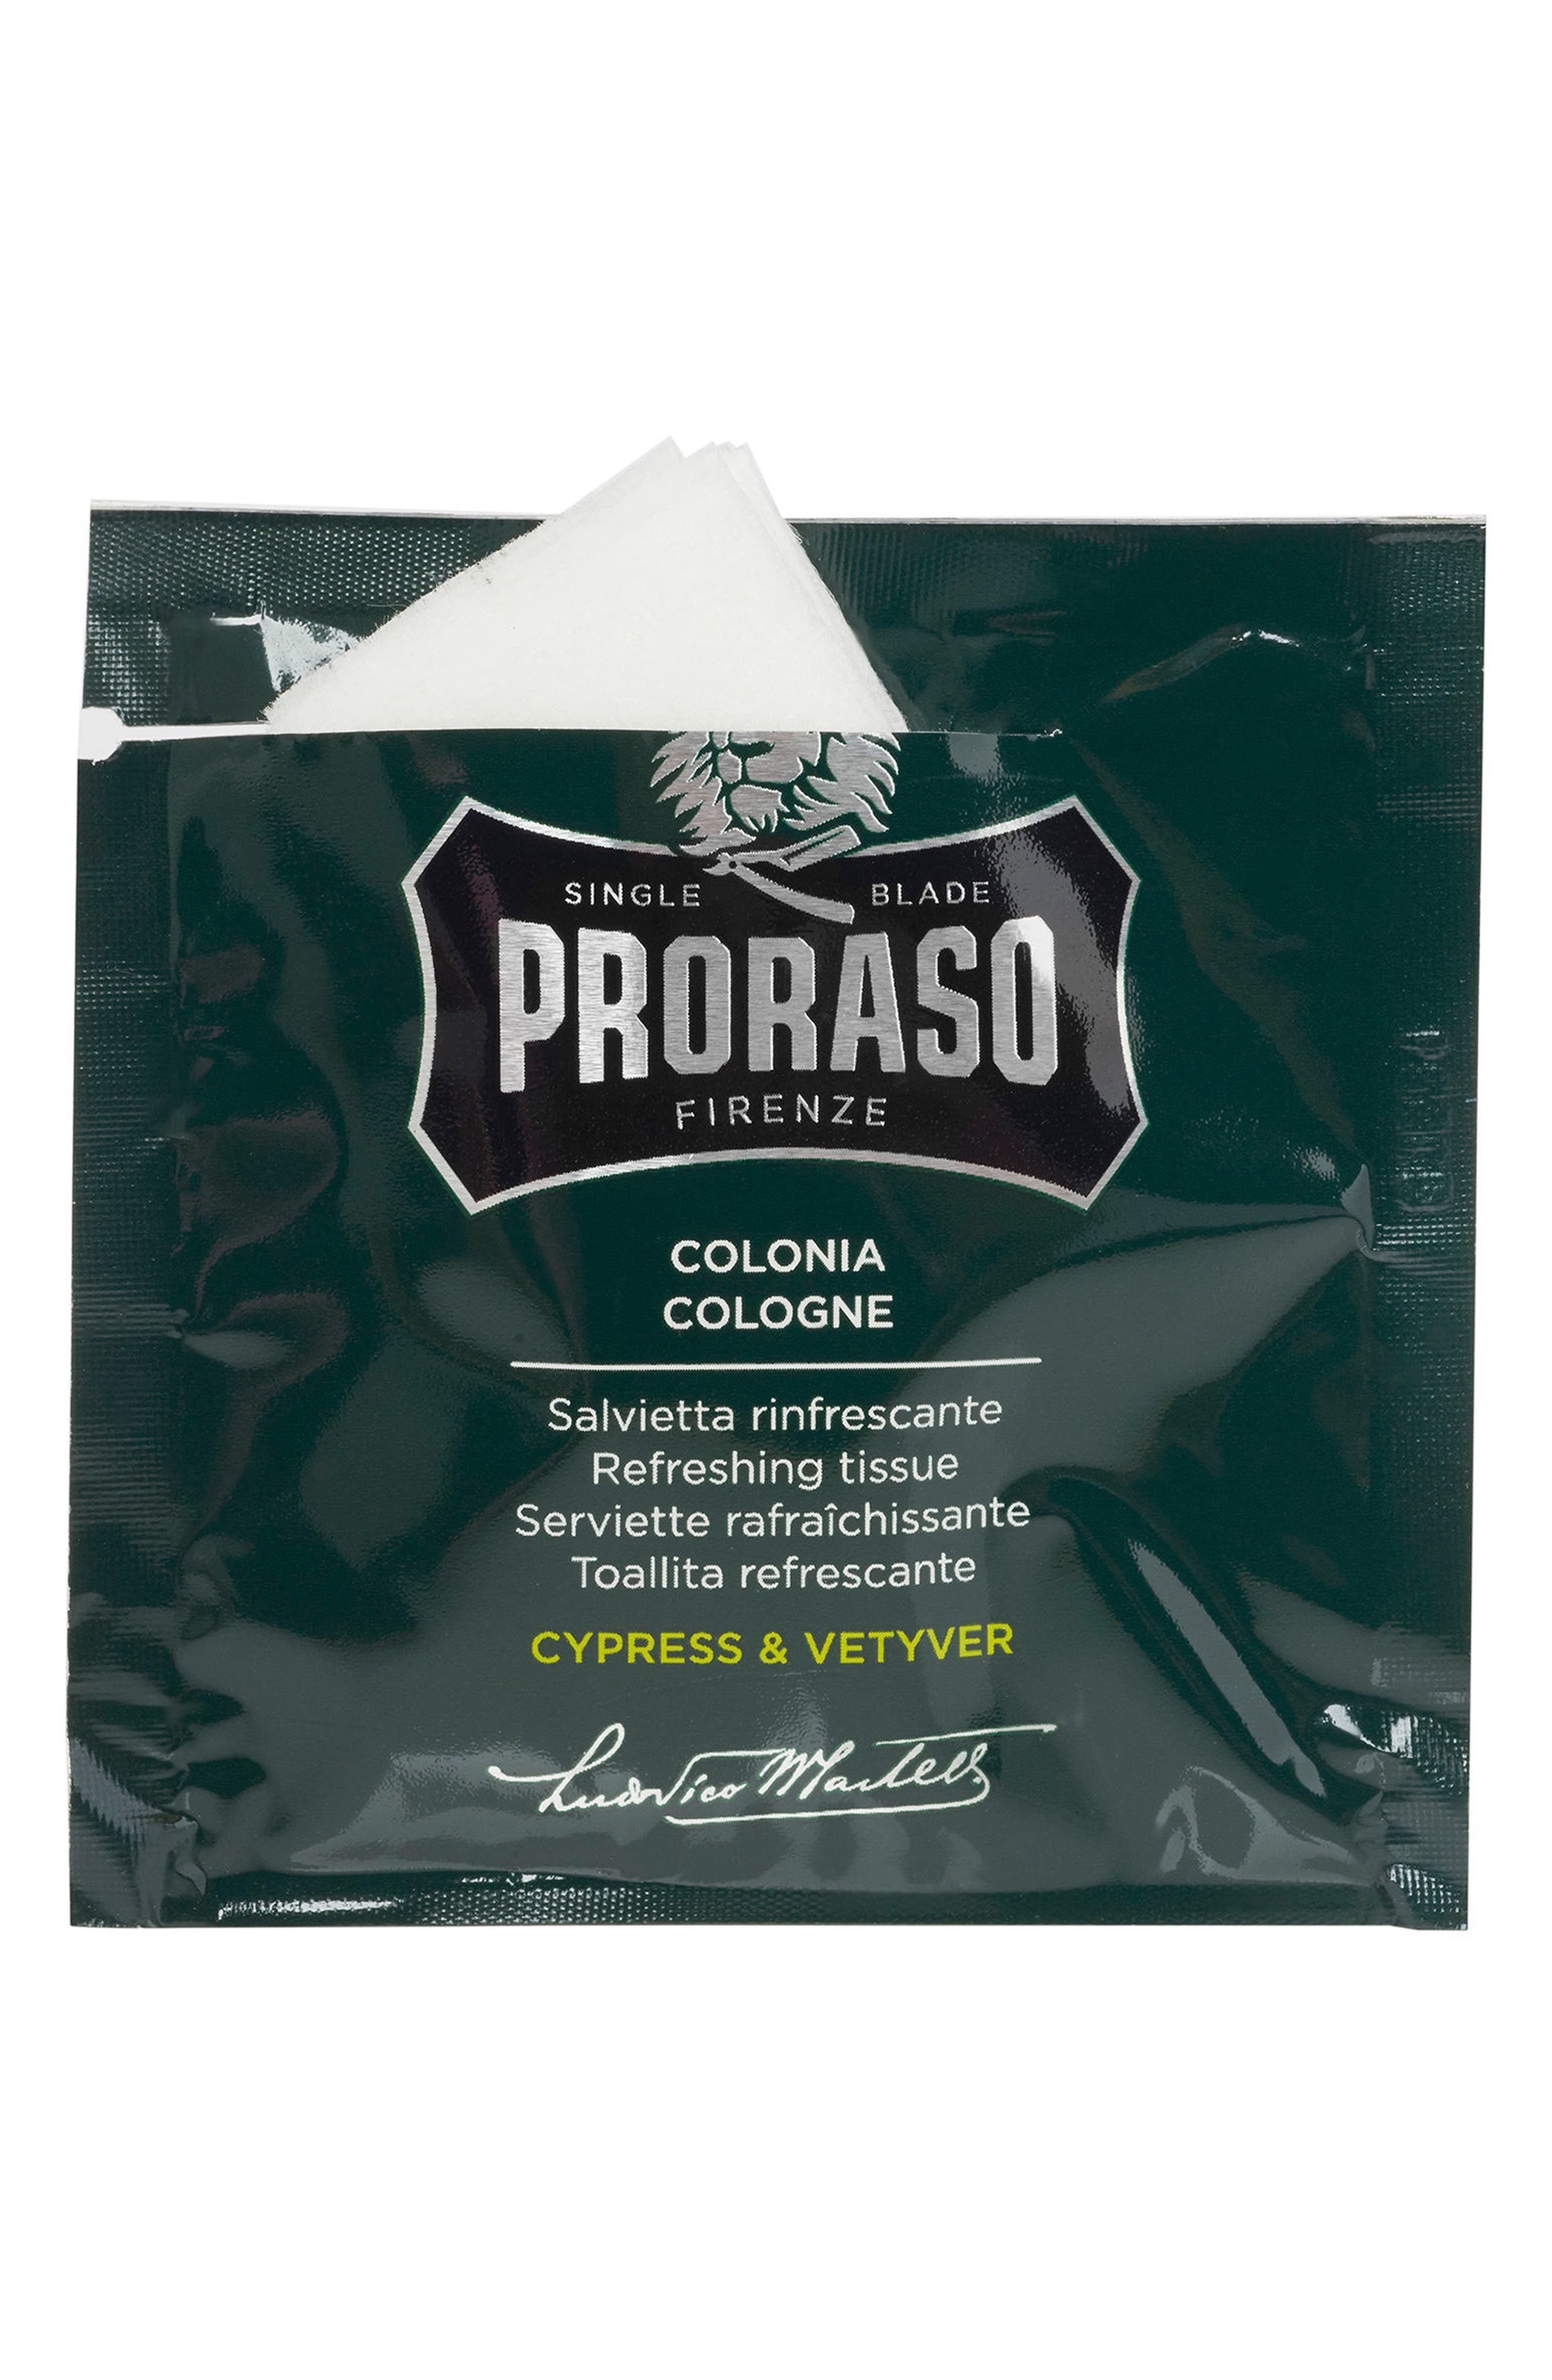 PRORASO Men's Grooming Cypress & Vetyver Refreshing Tissues, Main, color, NO COLOR